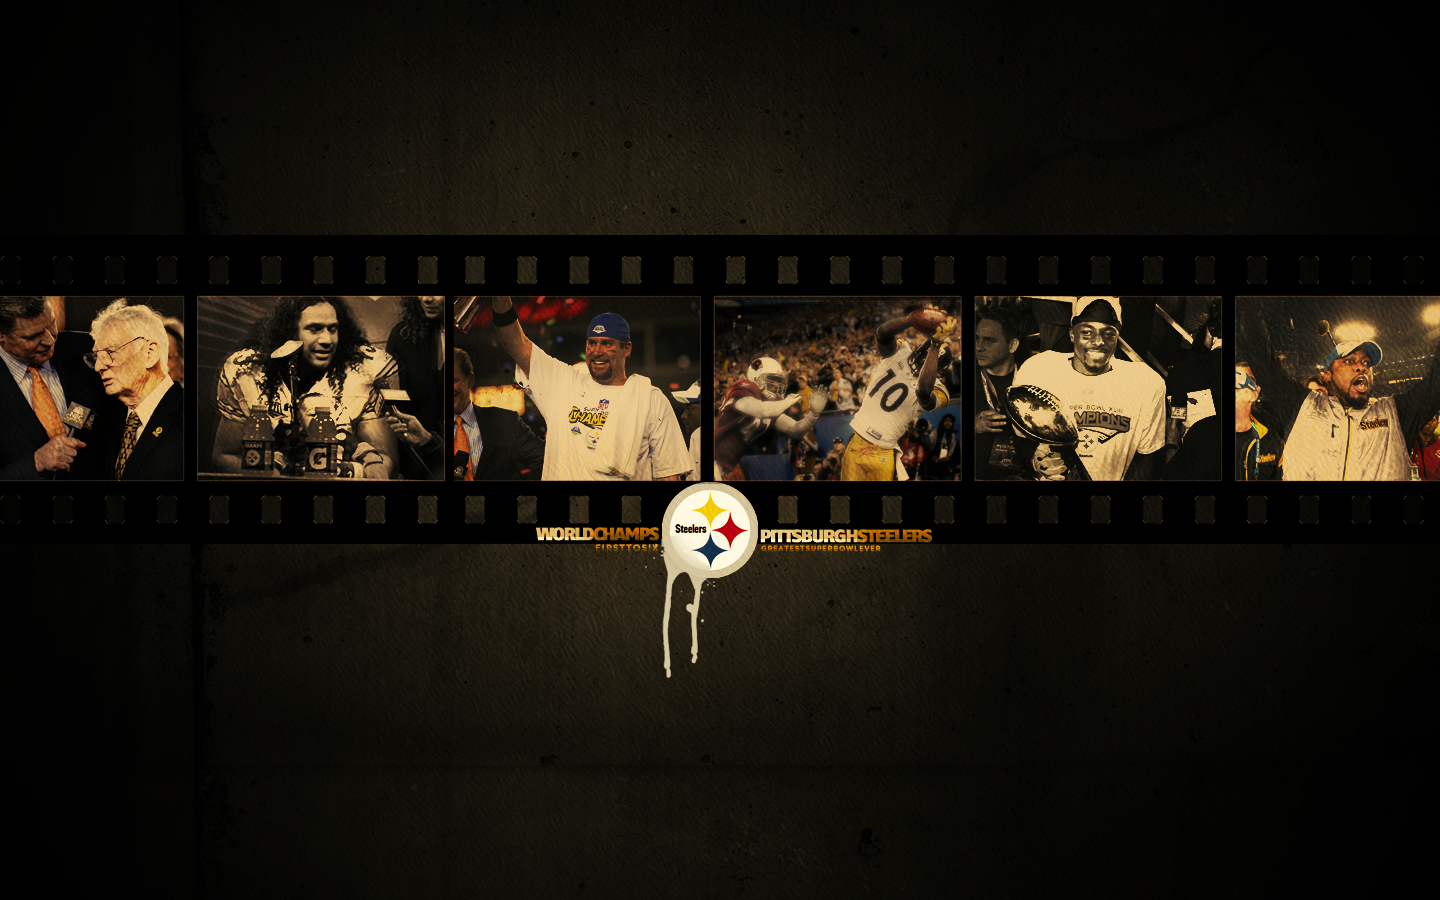 Pittsburgh Steelers Wallpaper For Comput 1440x900